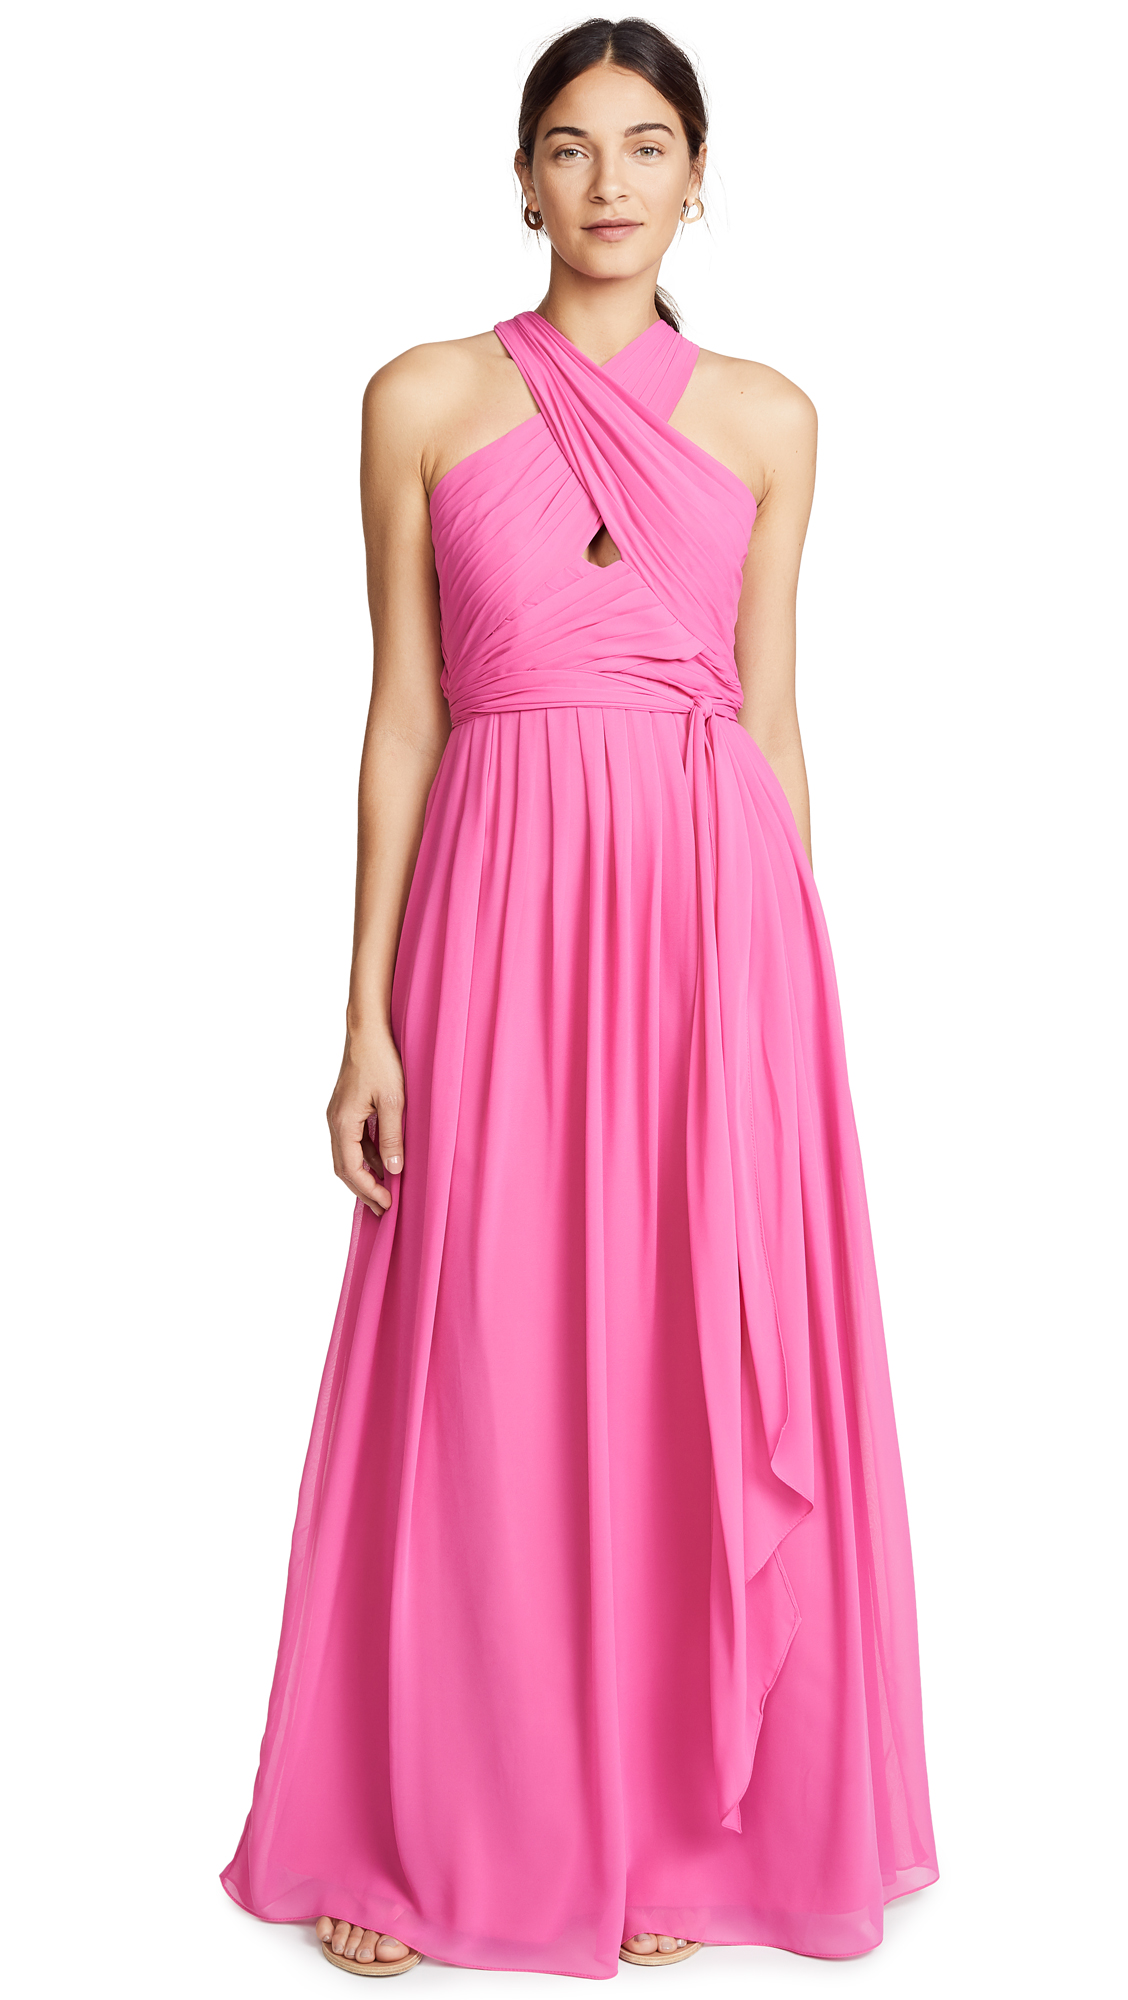 MONIQUE LHUILLIER BRIDESMAIDS Halter Gown With Cutout in Peony